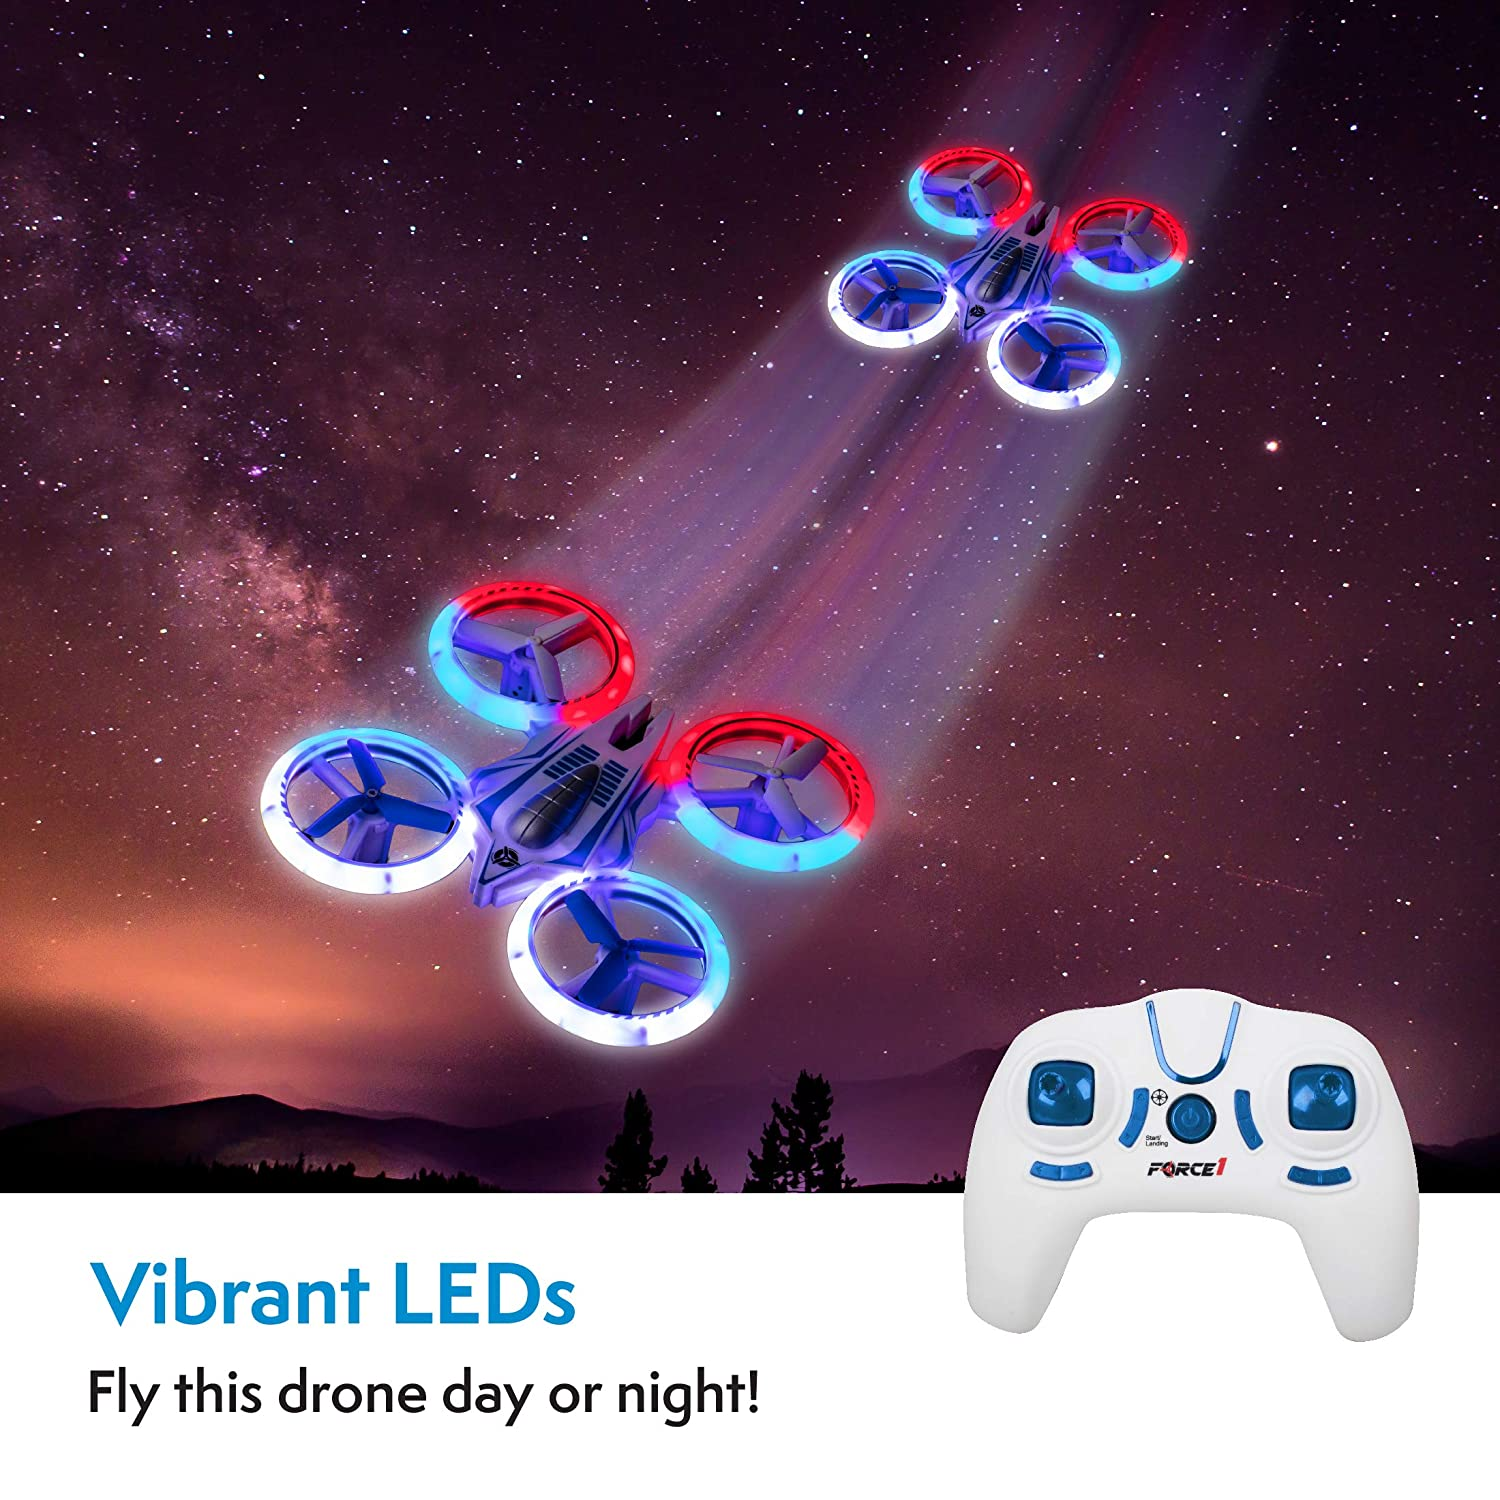 UFO 4000 LED Mini Drone for Kids or Beginners Small Micro Indoor RC Drone Quadcopter Toy Gifts for Teen Boys or Girls UFO Mini Drones for Kids